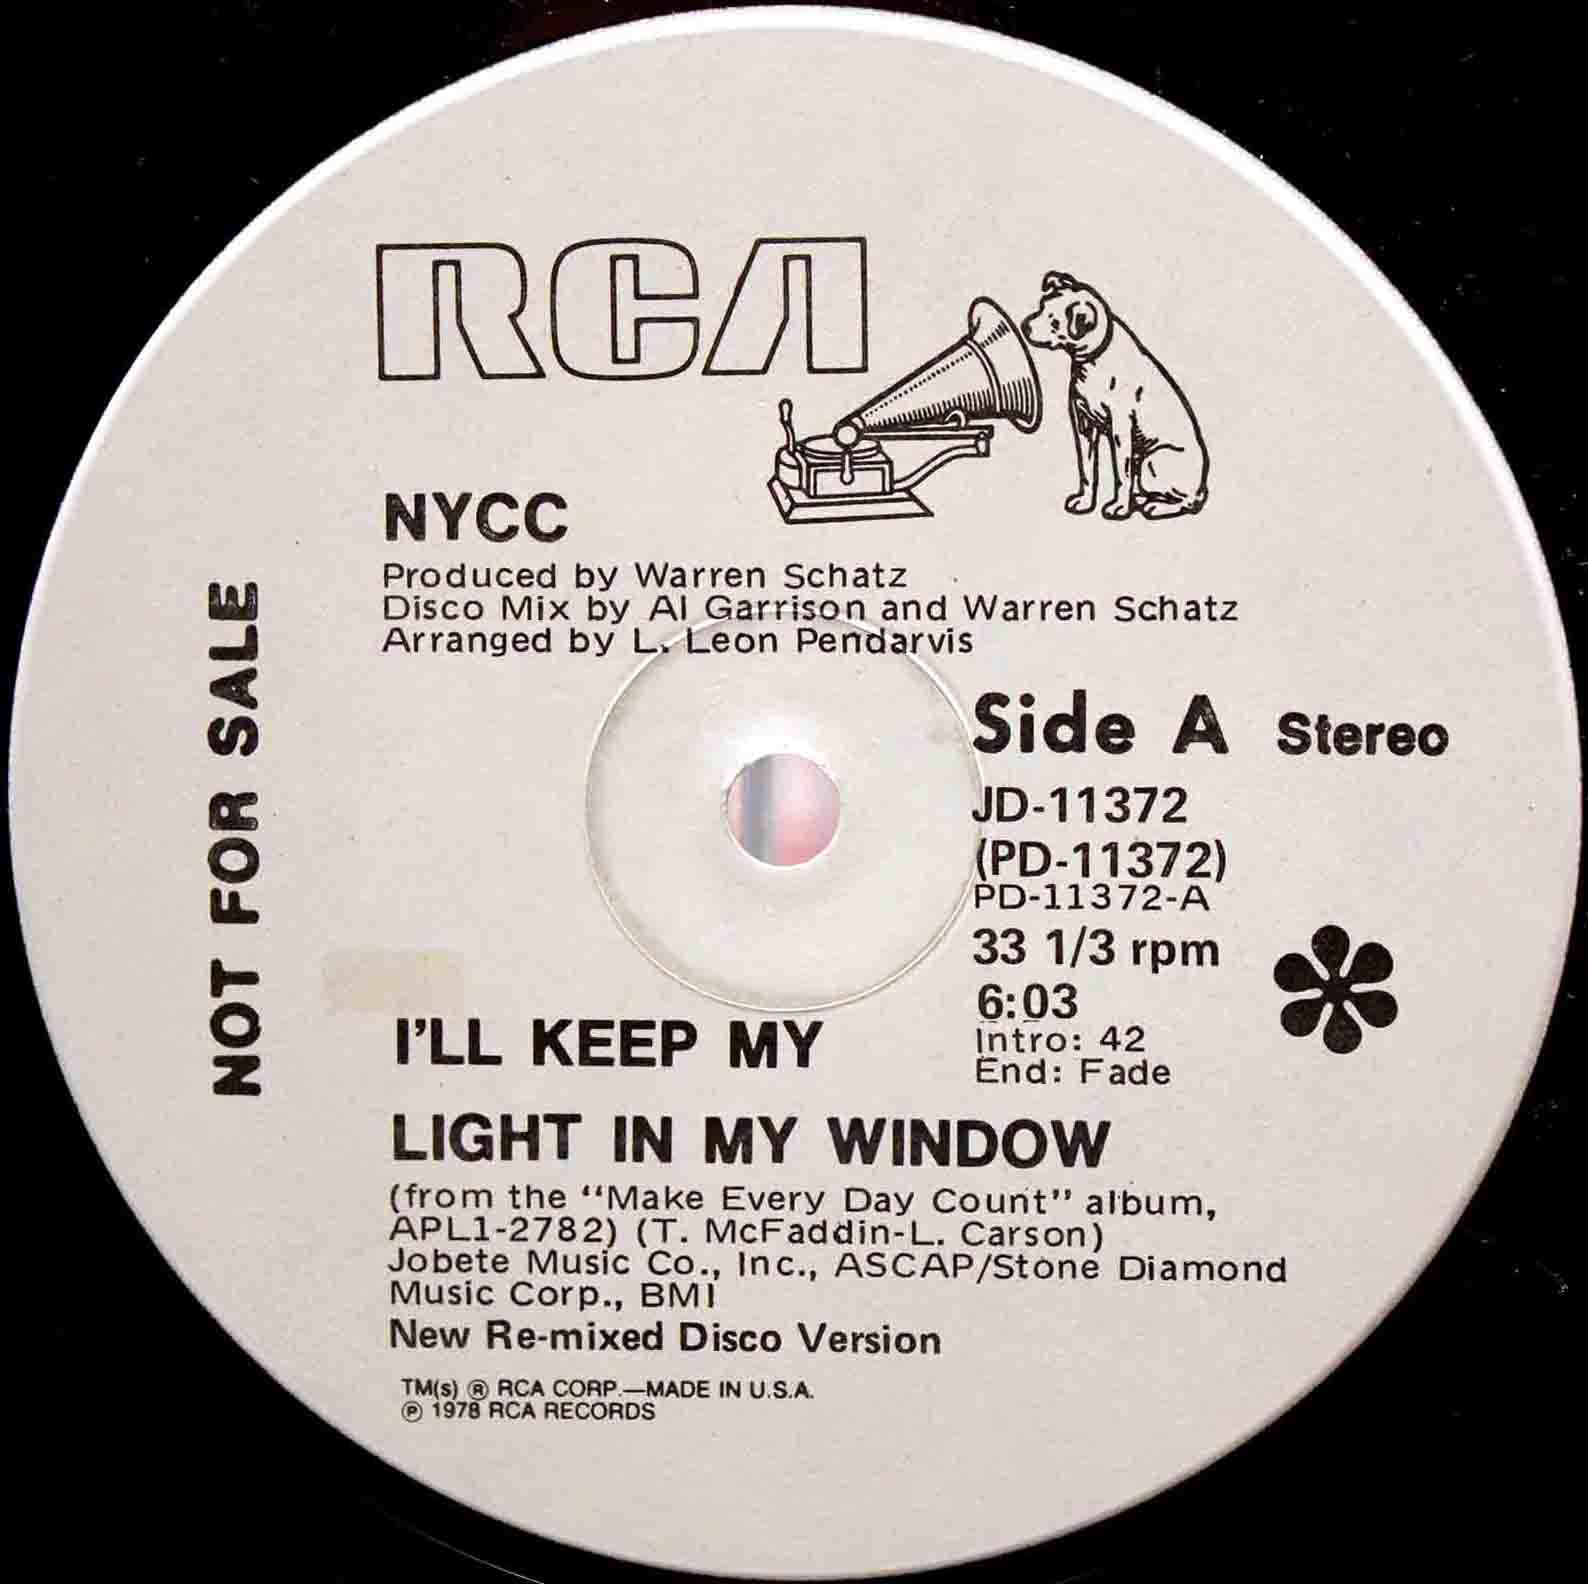 NYCC ‎– Ill Keep My Light In My Window 03